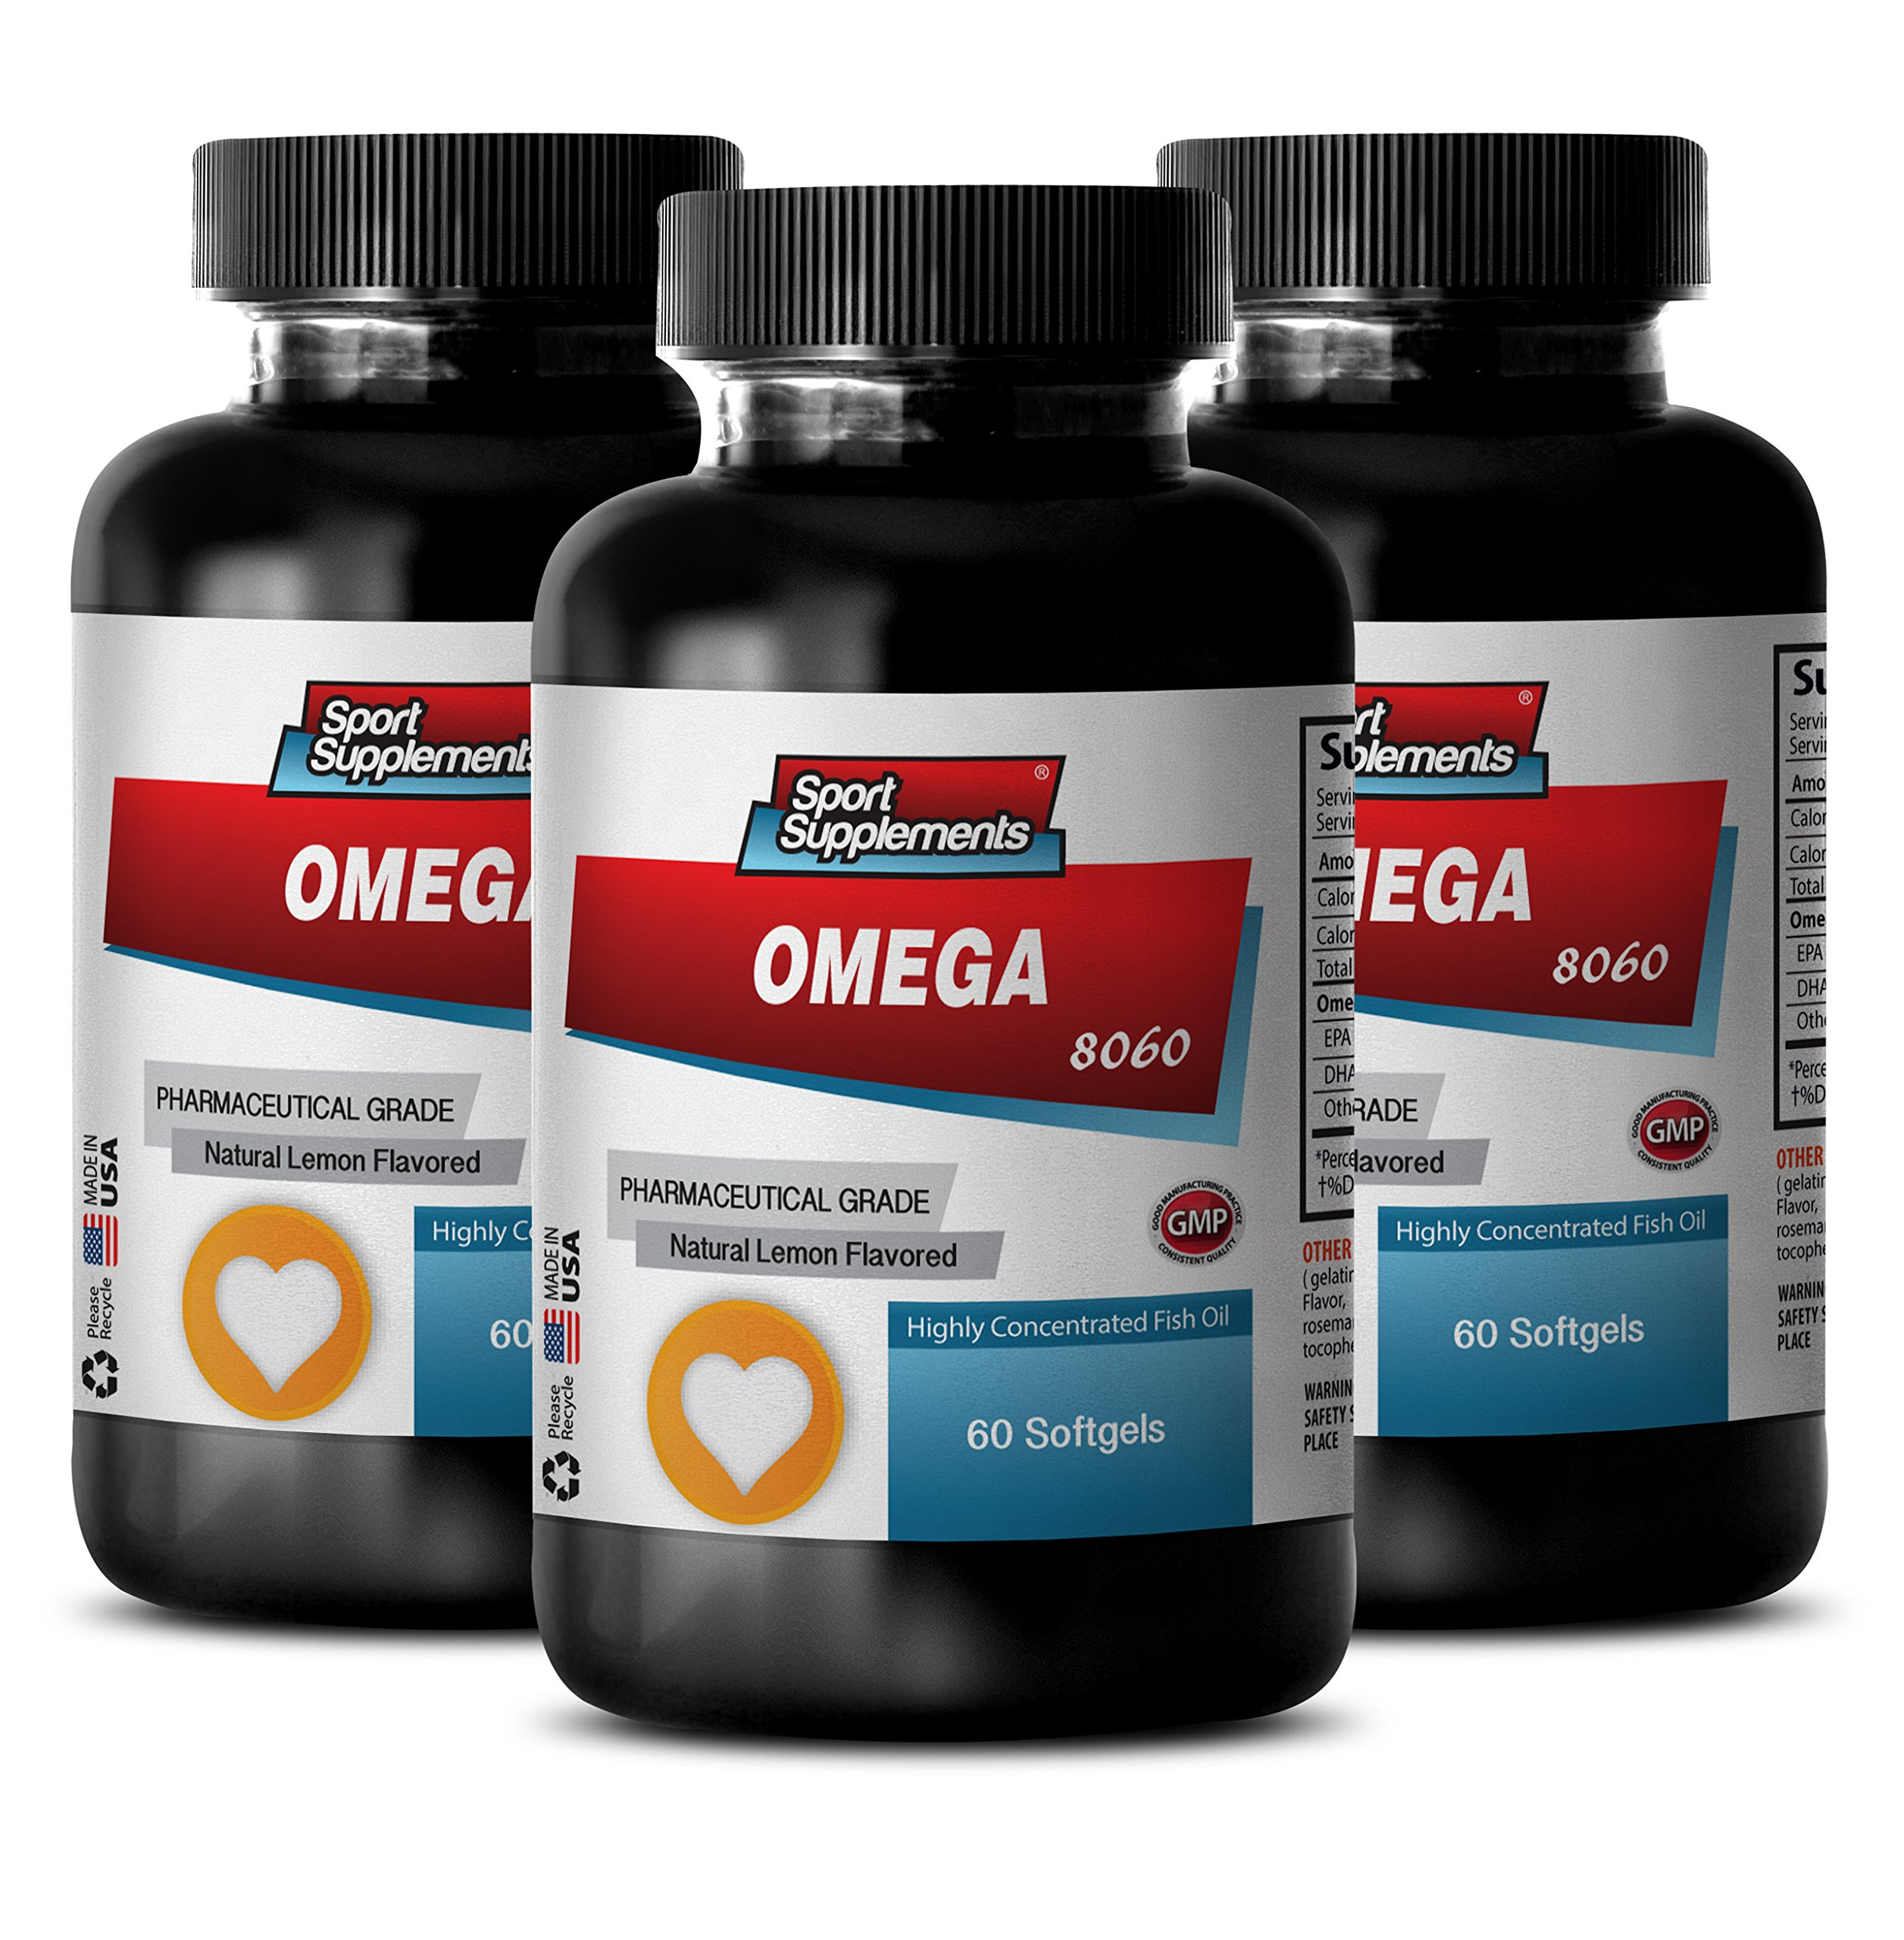 Immune support booster - OMEGA 8060 FATTY ACIDS 1500mg (Highly Concentrated Fish Oil - Pharmaceutical Grade) - Omega 3 high epa - 3 Bottles 180 Softgels